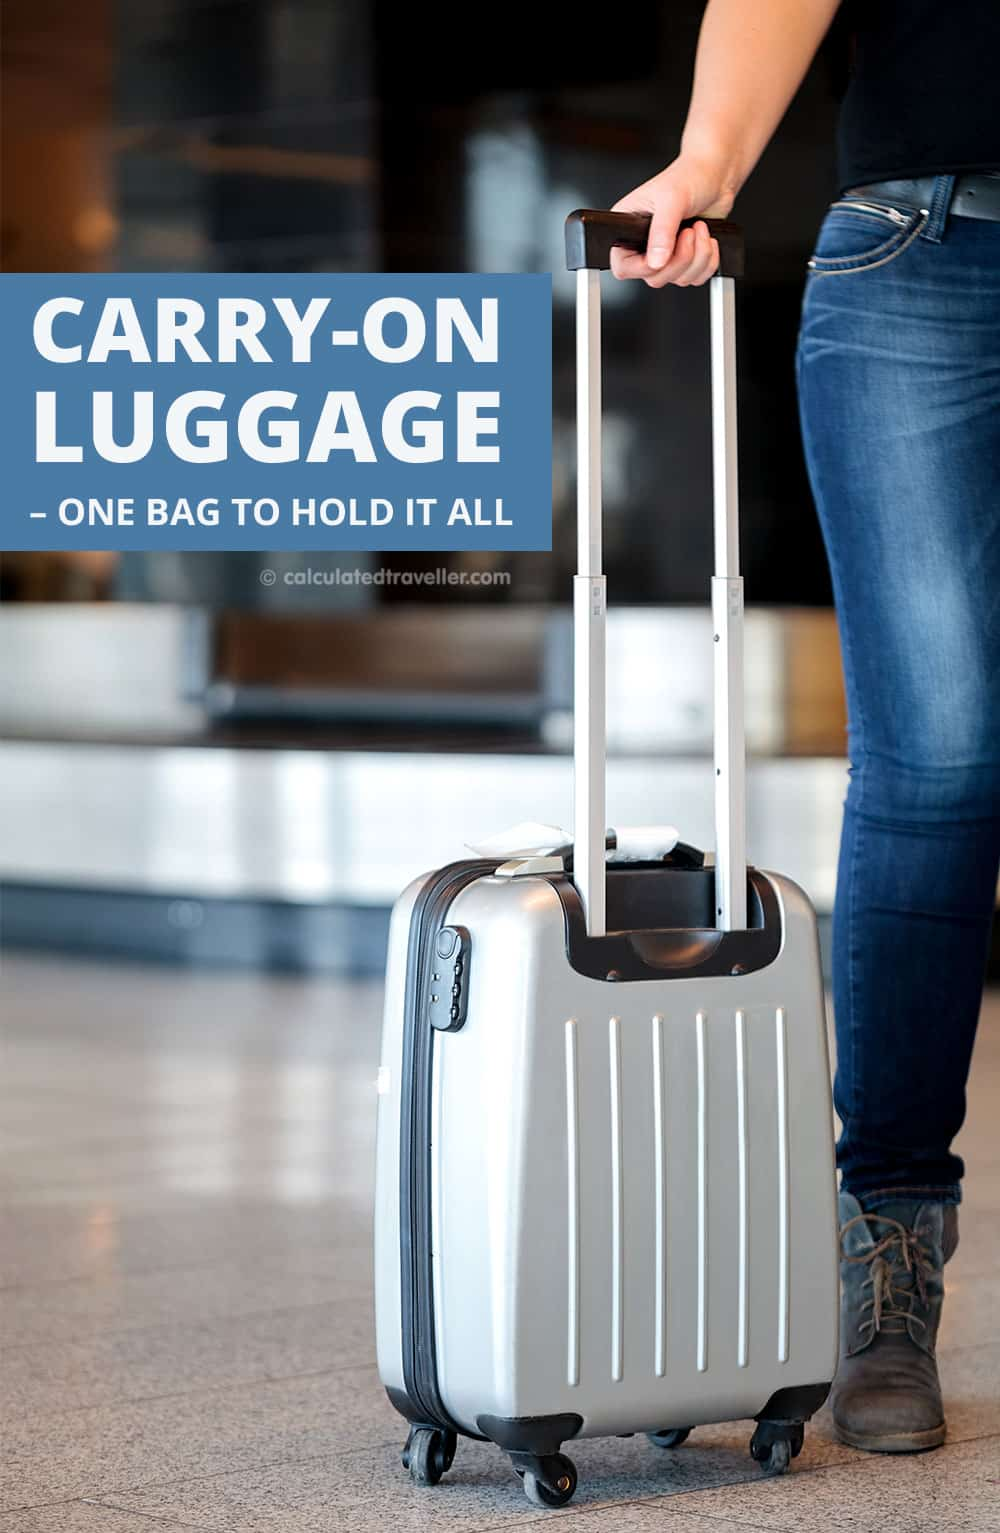 Carry-On Luggage – One Bag to Hold it All. A luggage shopping guide by Calculated Traveller Magazine. #CarryOn #shopping #guide #travel #luggage